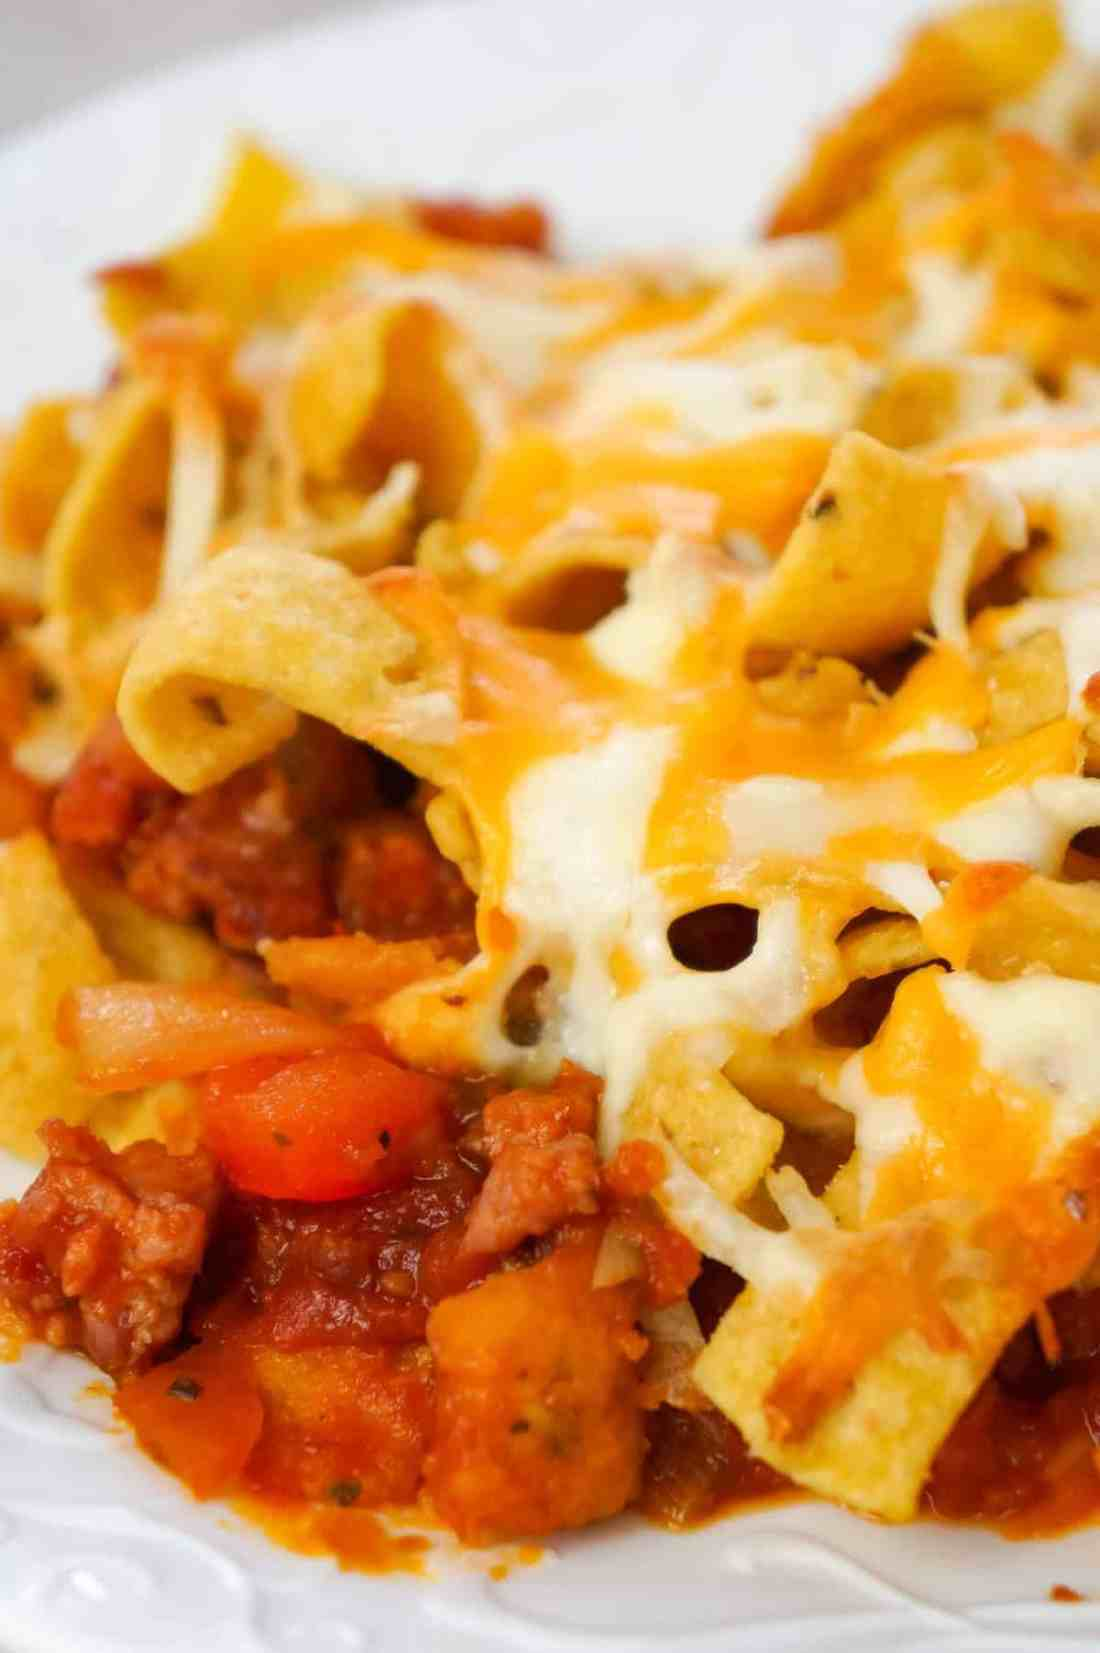 Sausage and Peppers Frito Pie is a delicious casserole recipe made with Italian pork sausage meat, onions and bell pepper tossed in a sweet and spicy tomato sauce and topped with Fritos corn chips and shredded cheese.